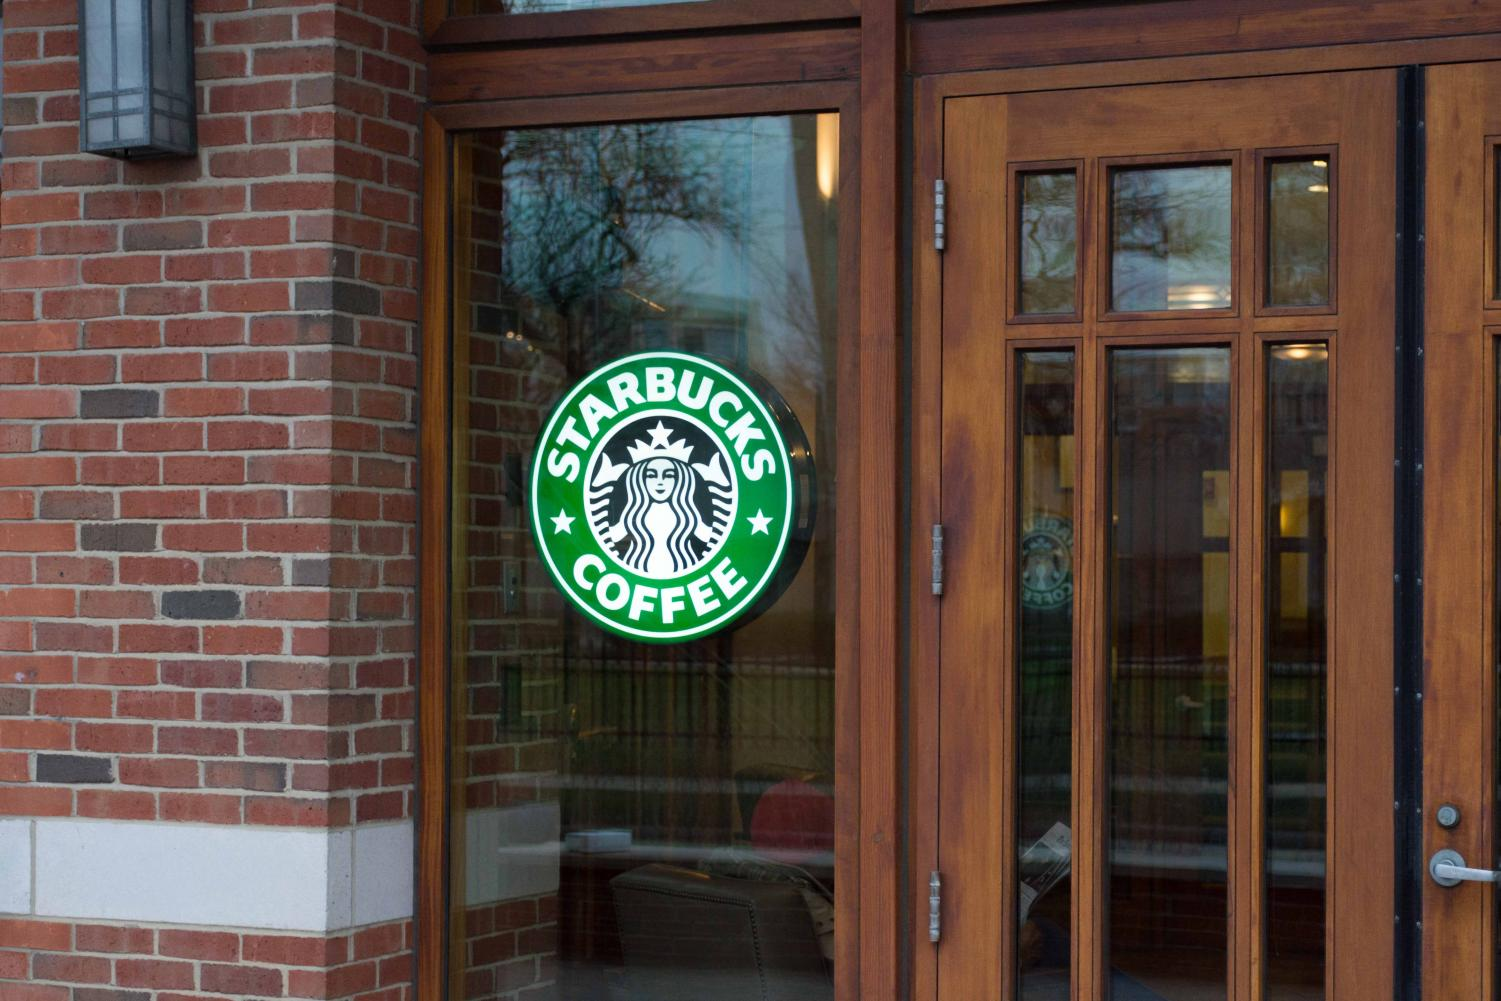 NRV Starbucks on the Tapingo app